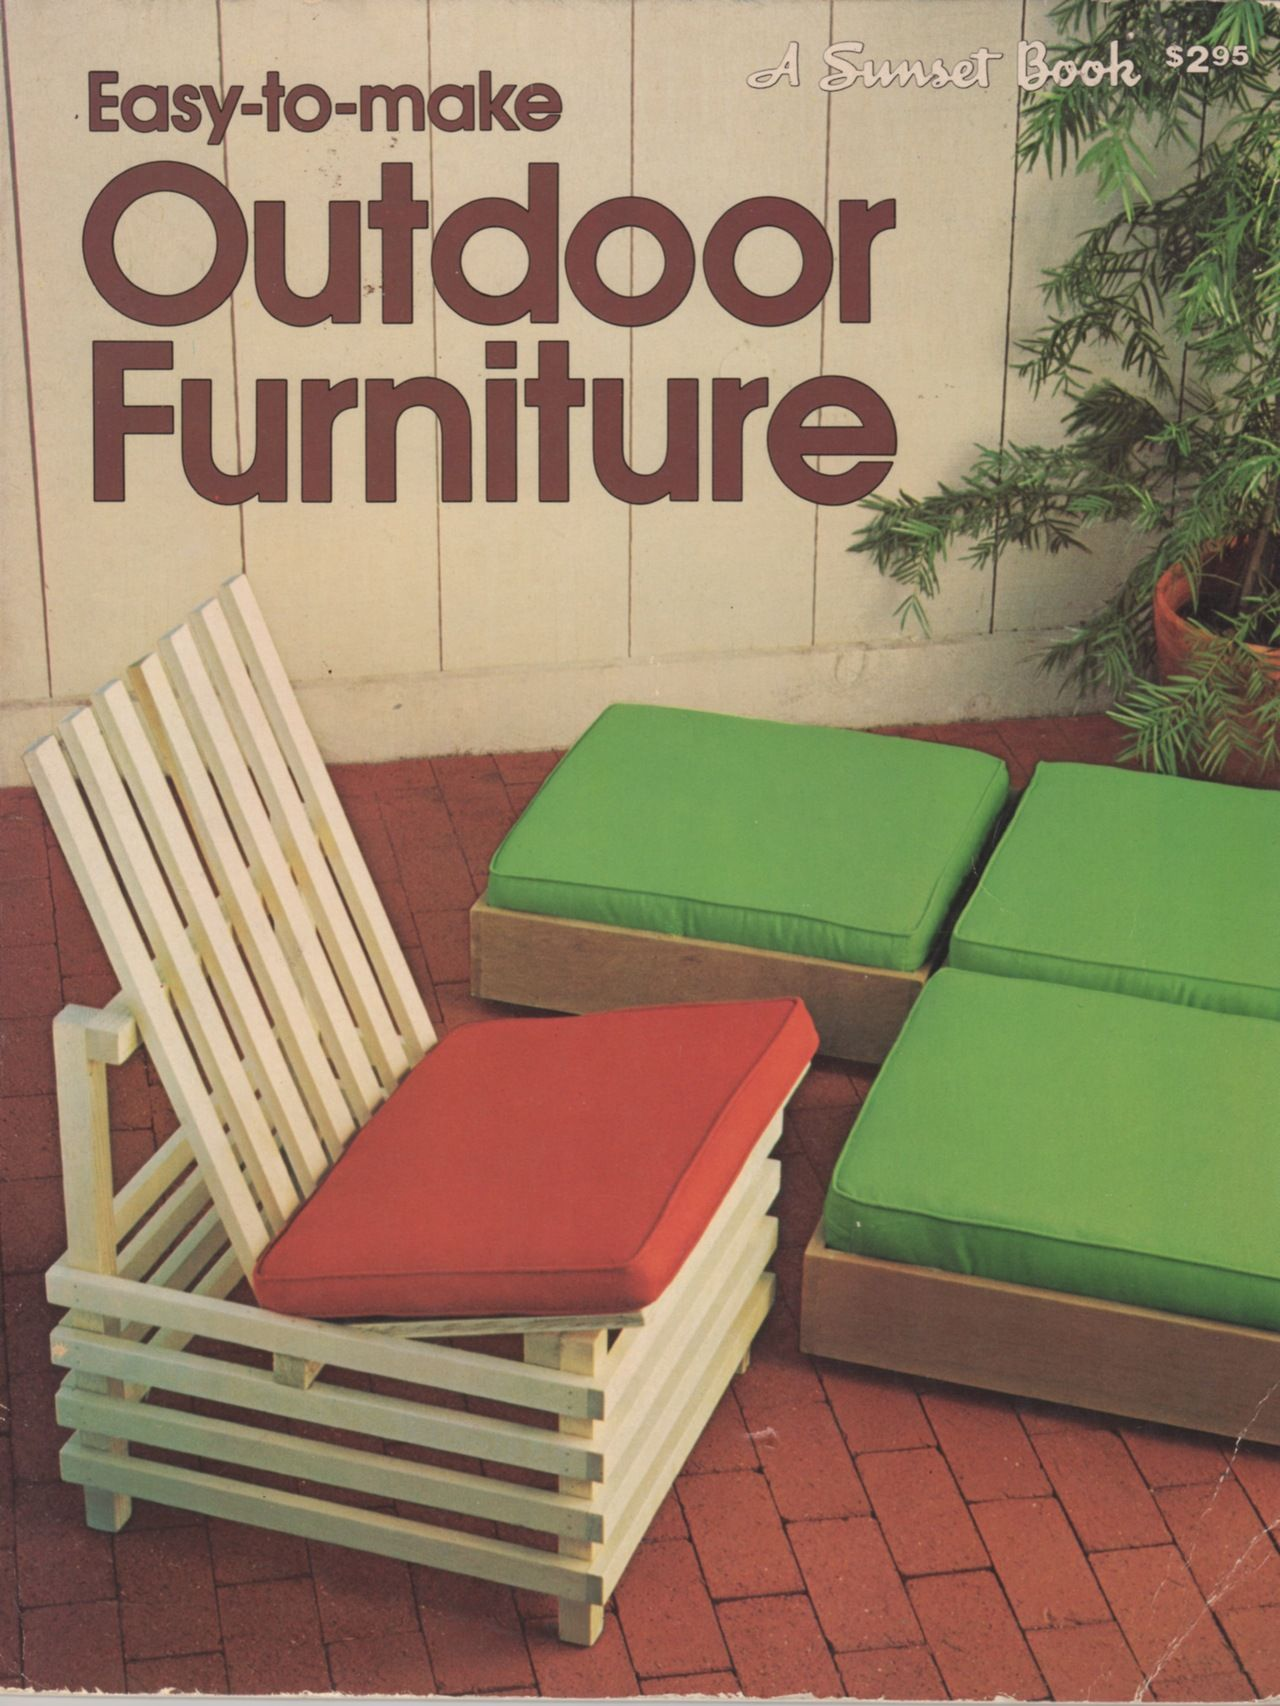 easy to make outdoor furniture a sunset book lane 1979 - Easy Garden Furniture To Make